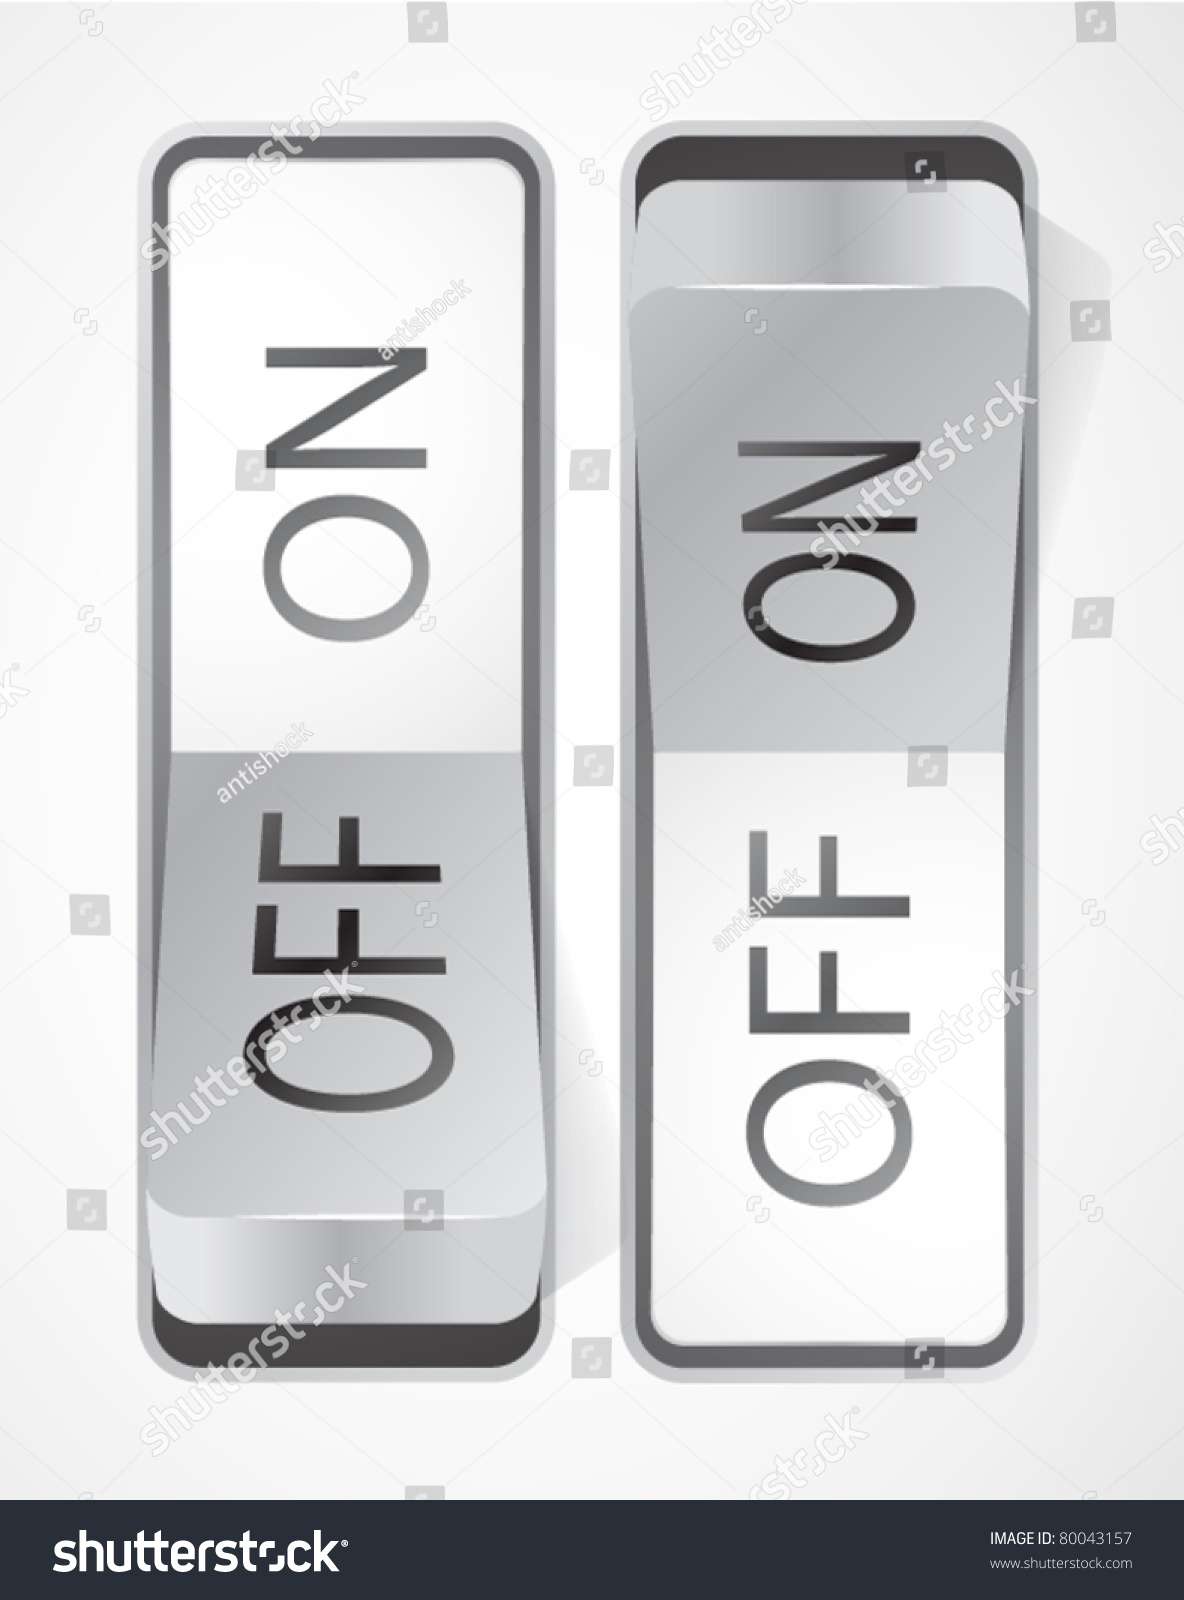 Toggle Switch On Off Buttons Stock Vector (Royalty Free) 80043157 ...